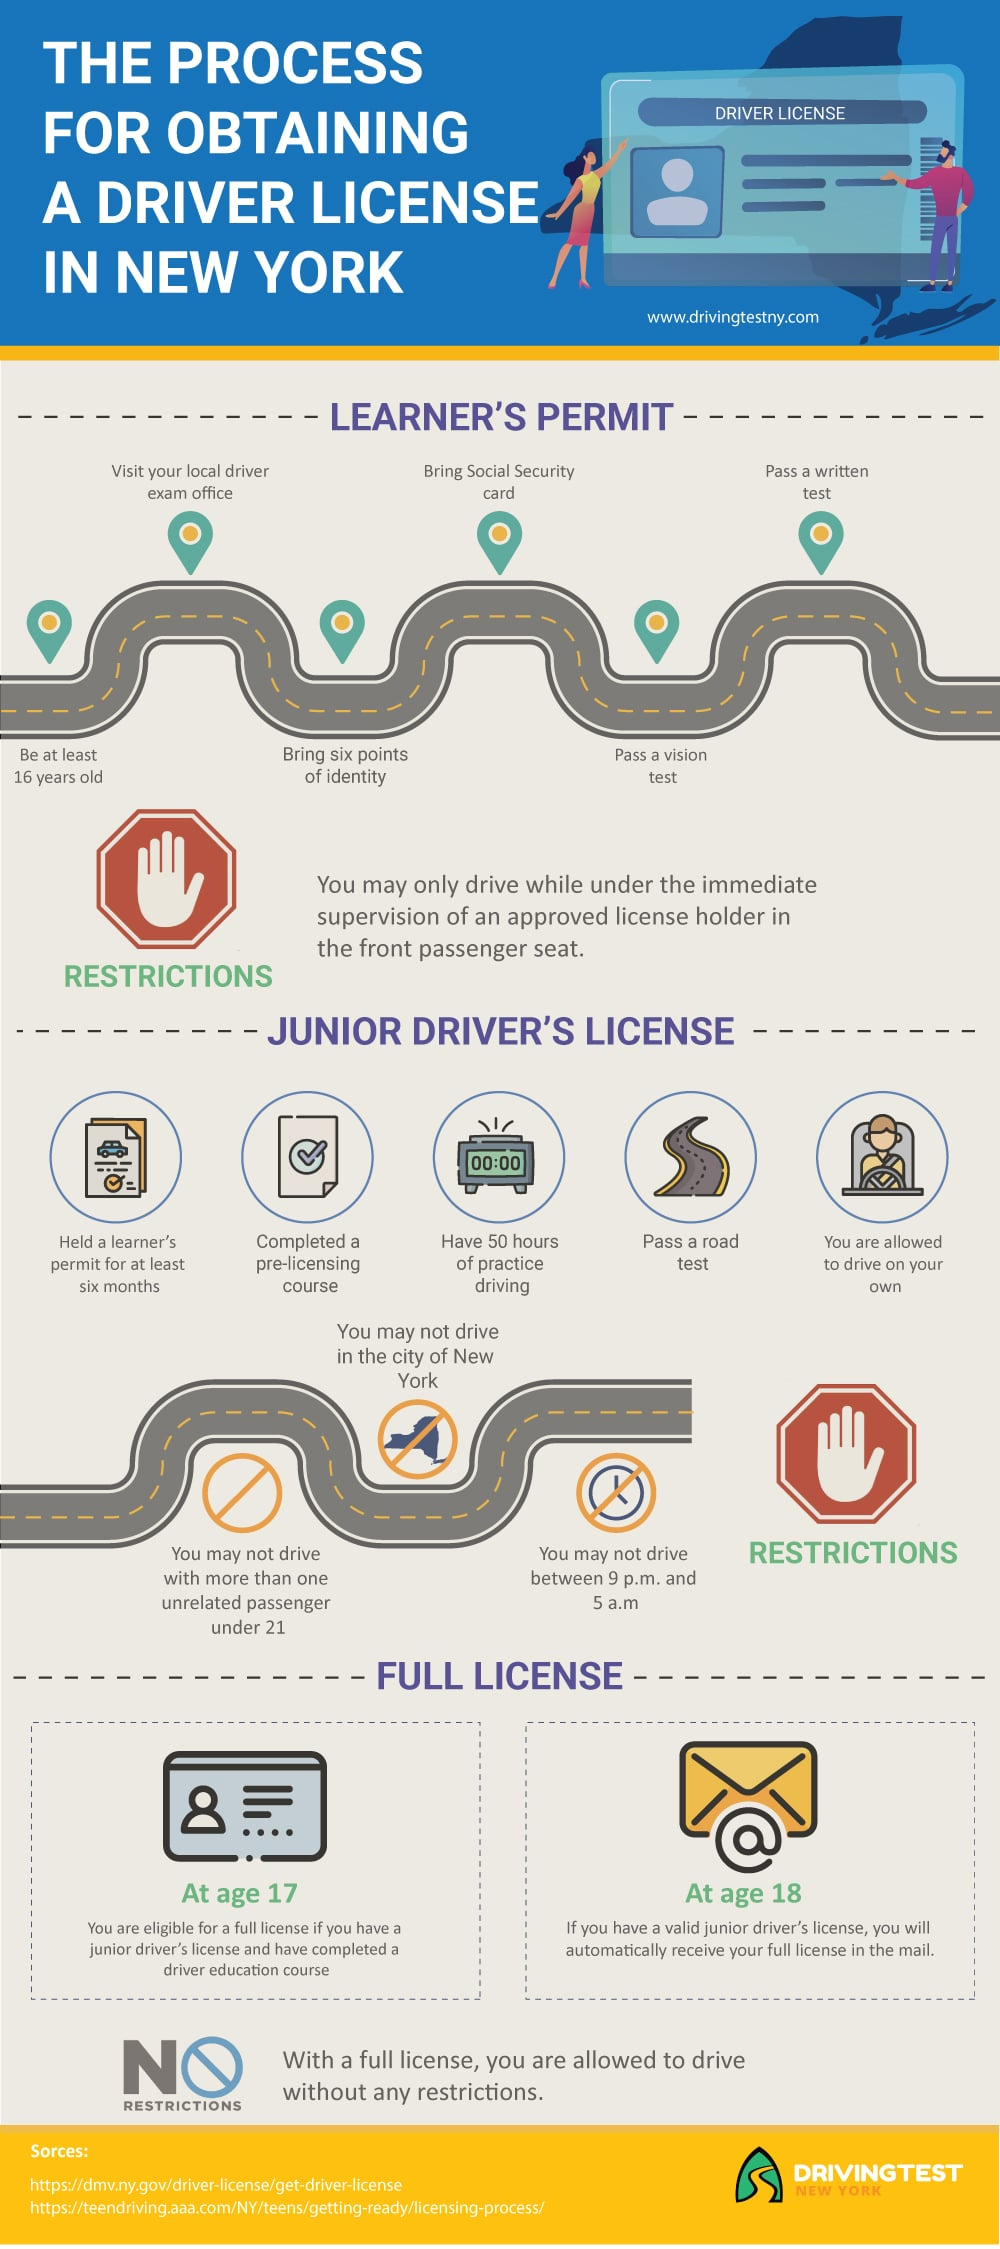 The Process For Obtaining a New York Driver License